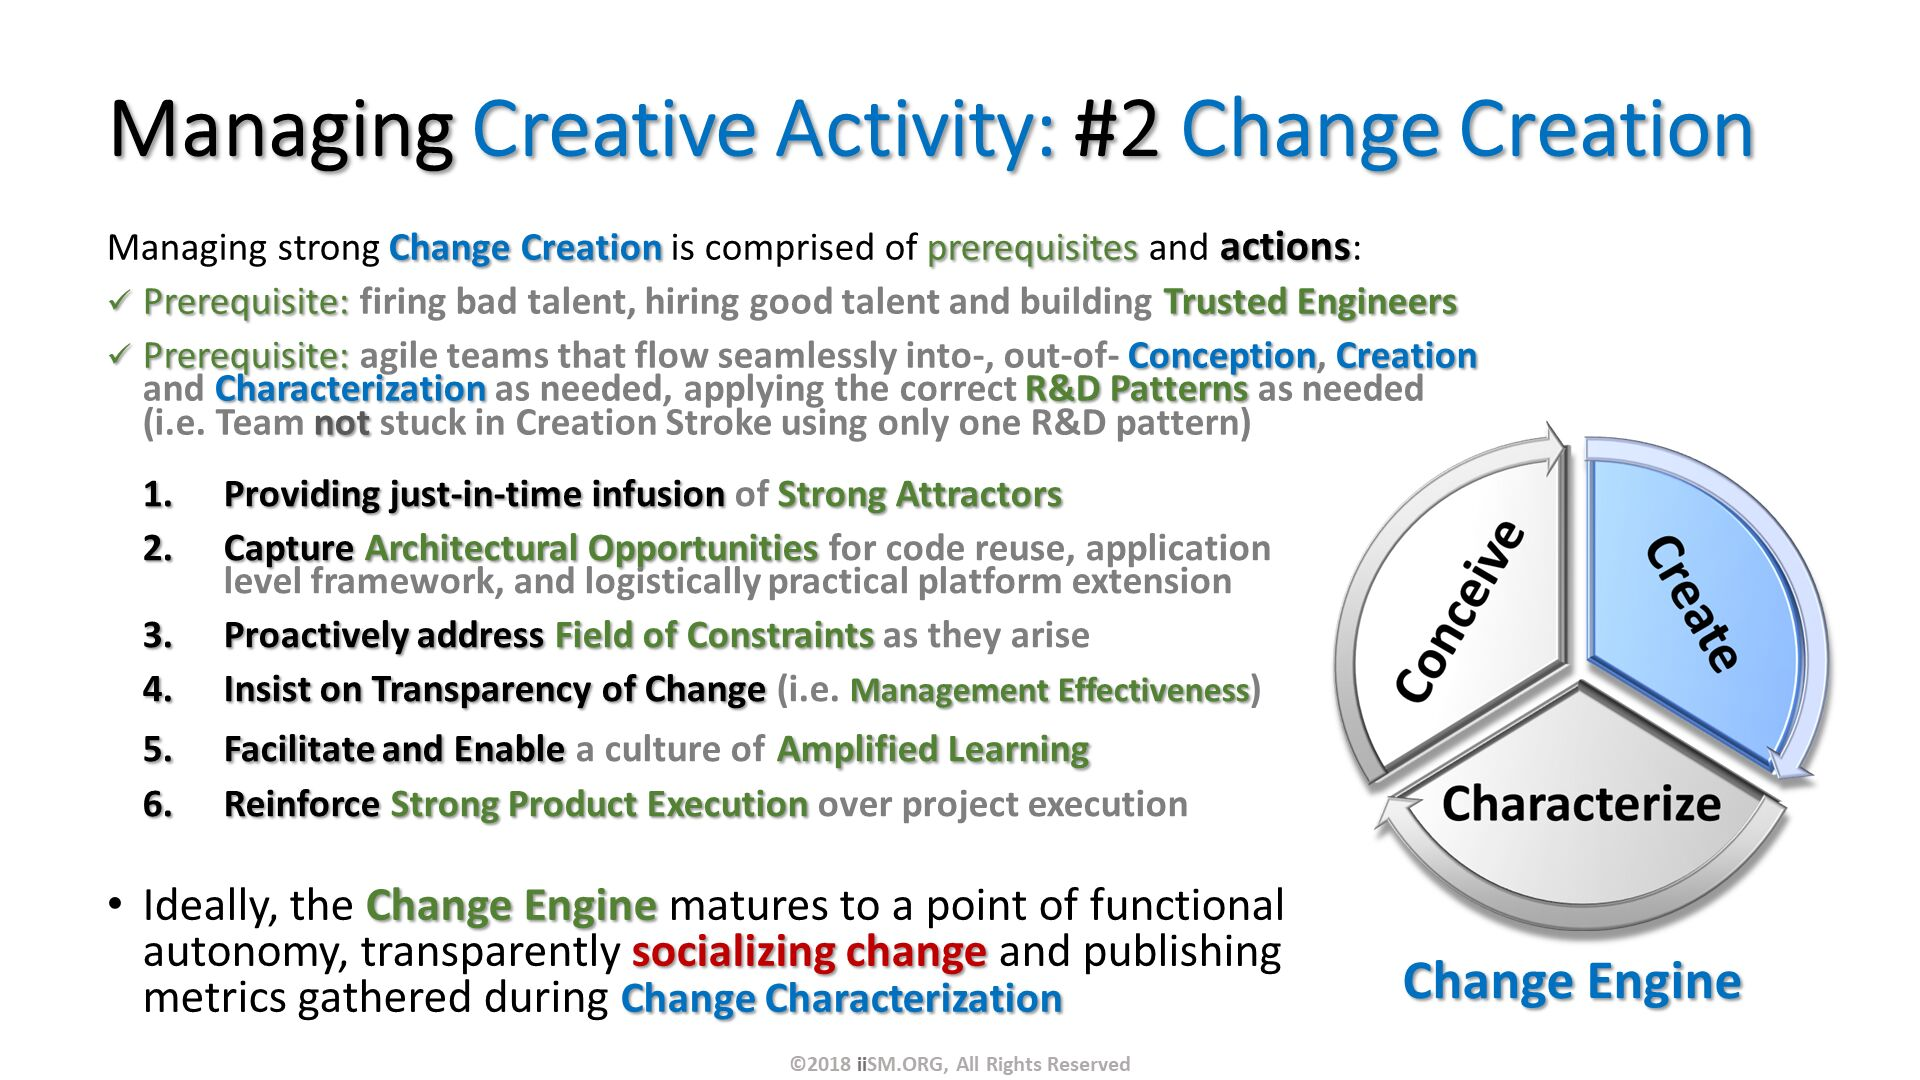 Managing Creative Activity: #2 Change Creation. Managing strong Change Creation is comprised of prerequisites and actions: Prerequisite: firing bad talent, hiring good talent and building Trusted Engineers Prerequisite: agile teams that flow seamlessly into-, out-of- Conception, Creation and Characterization as needed, applying the correct R&D Patterns as needed (i.e. Team not stuck in Creation Stroke using only one R&D pattern). Ideally, the Change Engine matures to a point of functional autonomy, transparently socializing change and publishing metrics gathered during Change Characterization . Change Engine . Providing just-in-time infusion of Strong Attractors Capture Architectural Opportunities for code reuse, application level framework, and logistically practical platform extension Proactively address Field of Constraints as they arise Insist on Transparency of Change (i.e. Management Effectiveness) Facilitate and Enable a culture of Amplified Learning Reinforce Strong Product Execution over project execution. ©2018 iiSM.ORG, All Rights Reserved.